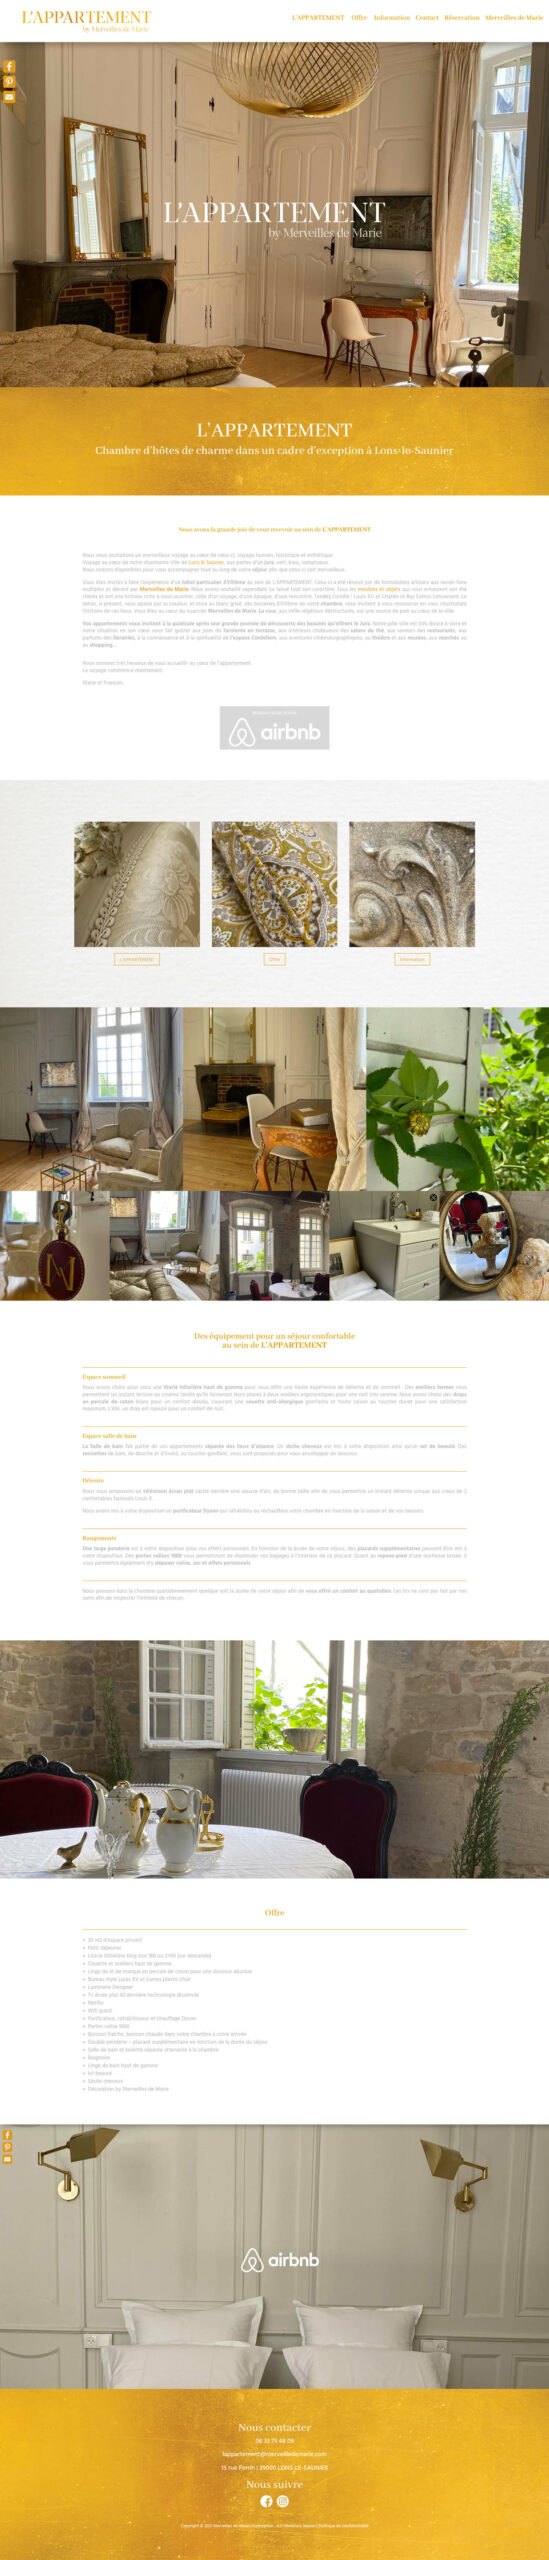 Site OnePage L'APPARTEMENT